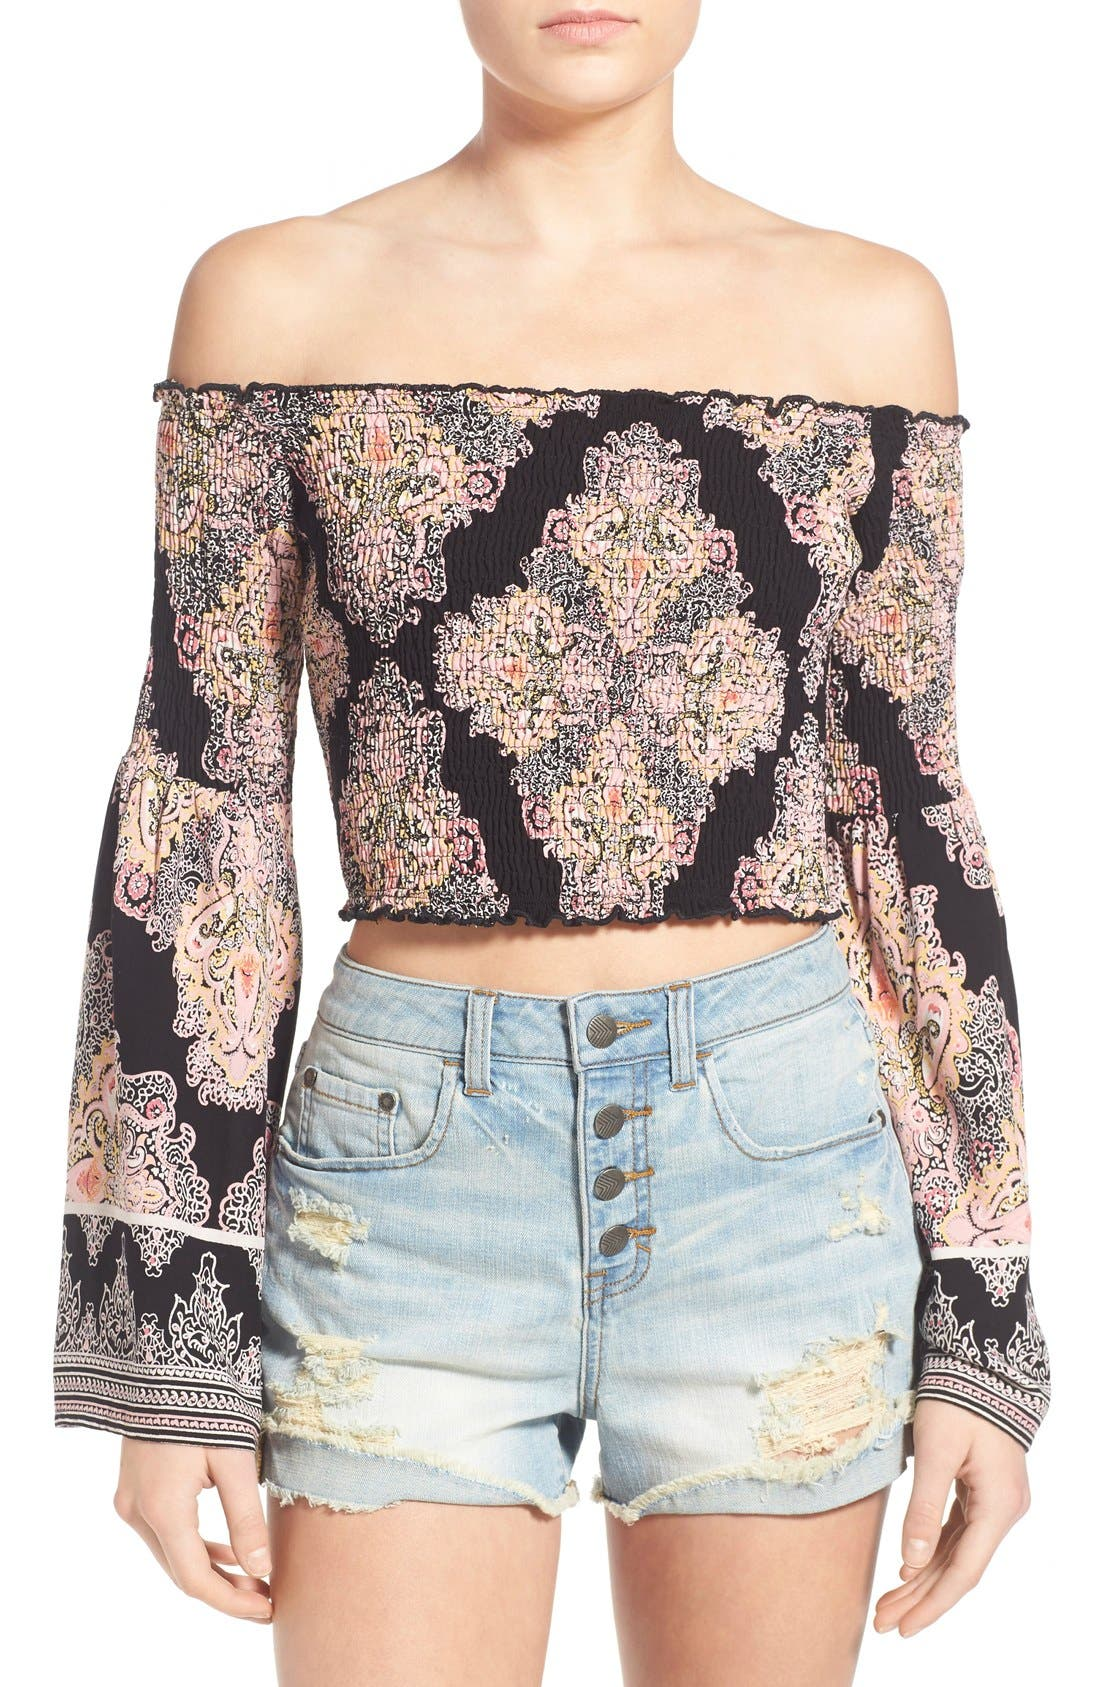 Alternate Image 1 Selected - Band of Gypsies Paisley Print Off the Shoulder Top